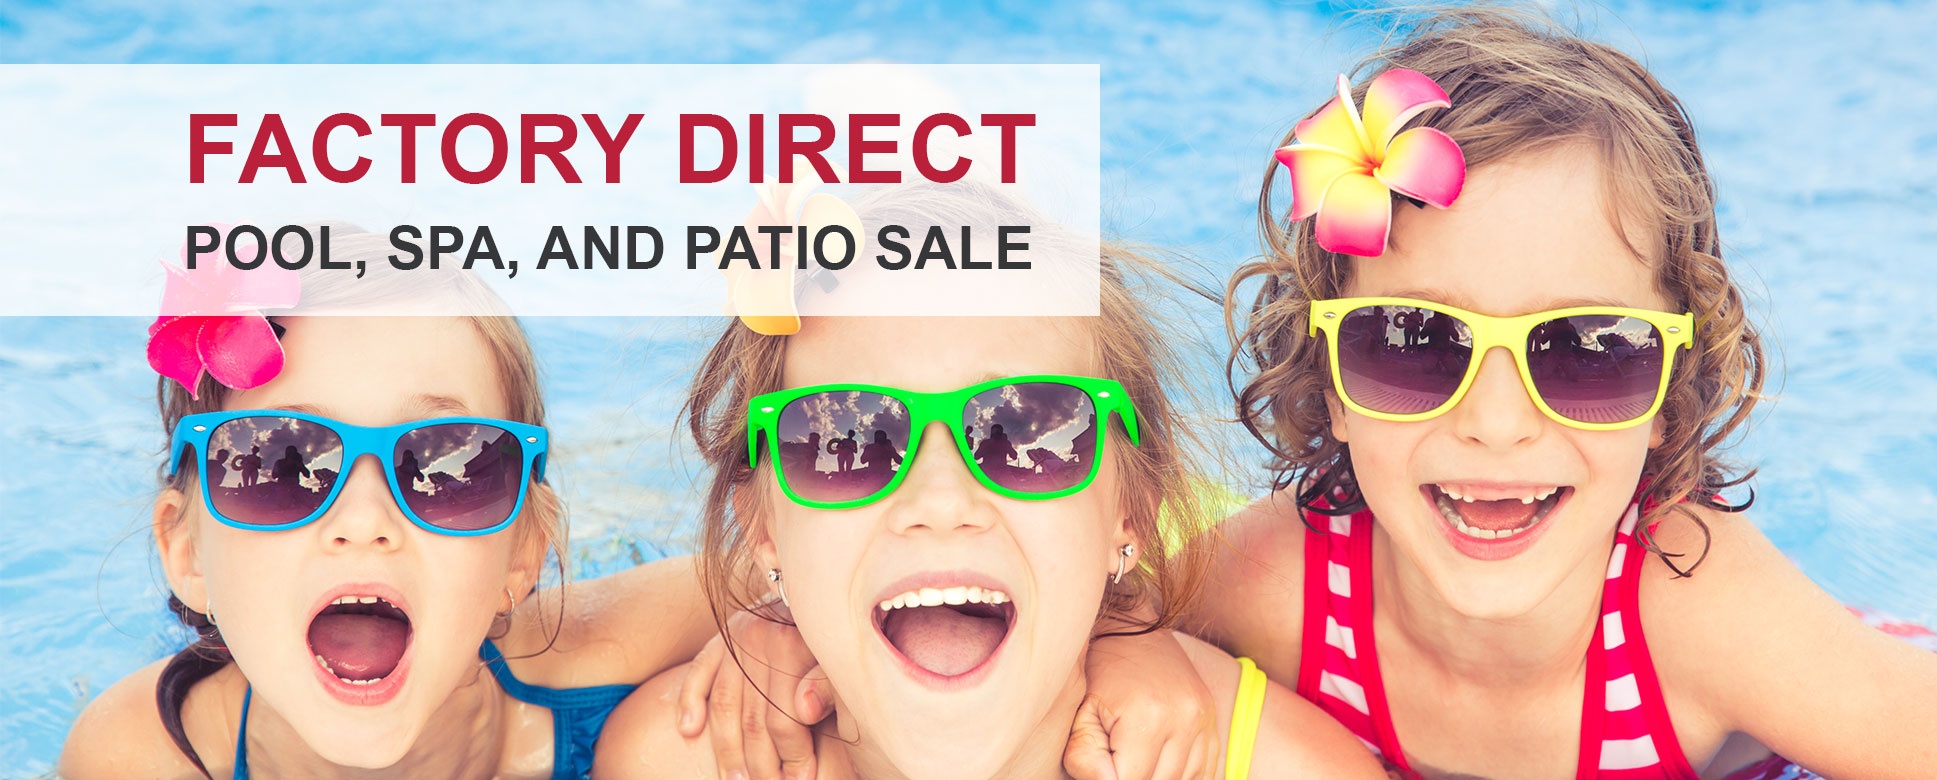 Factory Direct Pool and Patio Sale